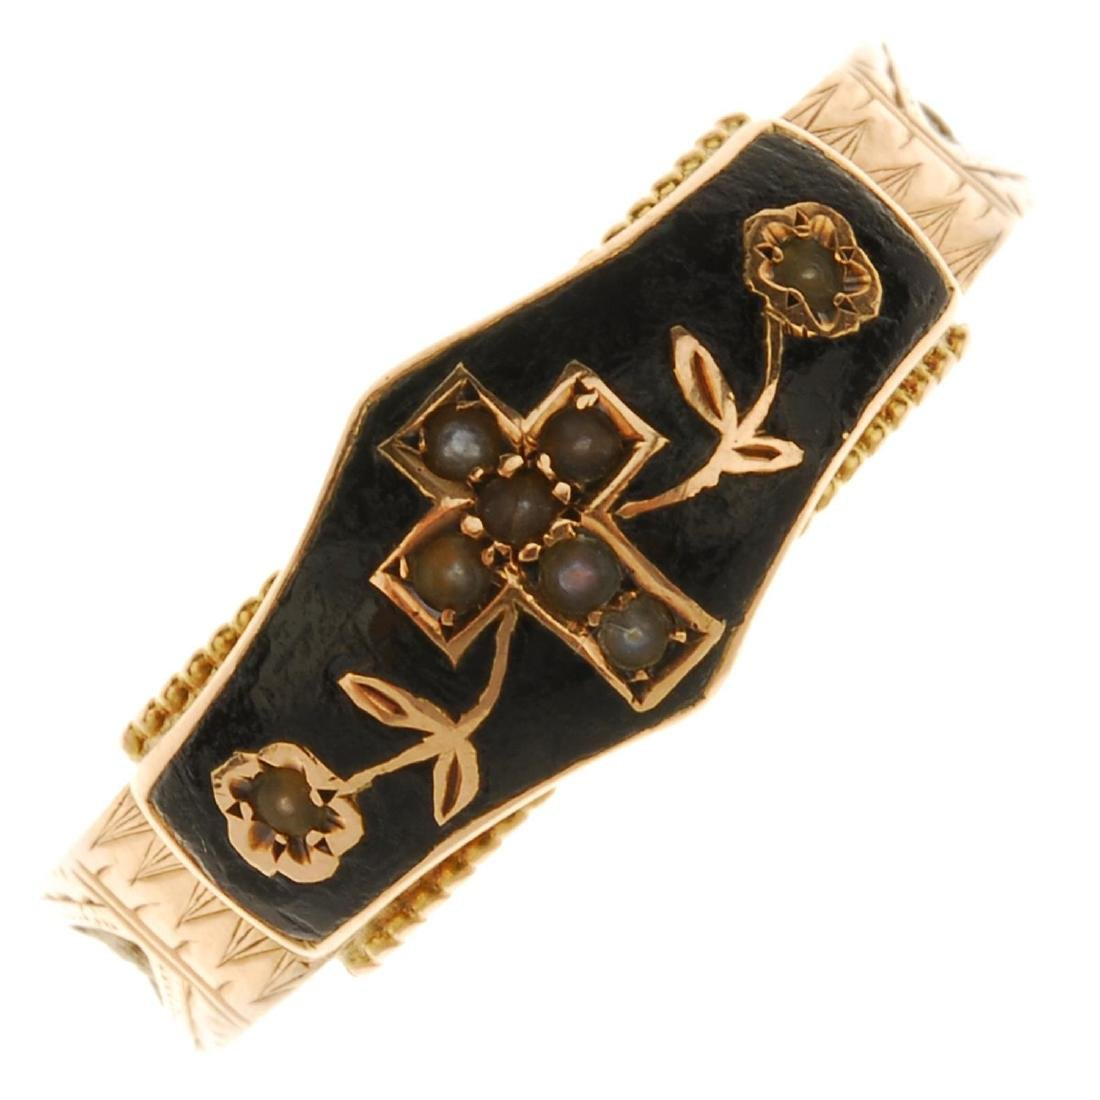 An early 20th century 9ct gold enamel and split pearl